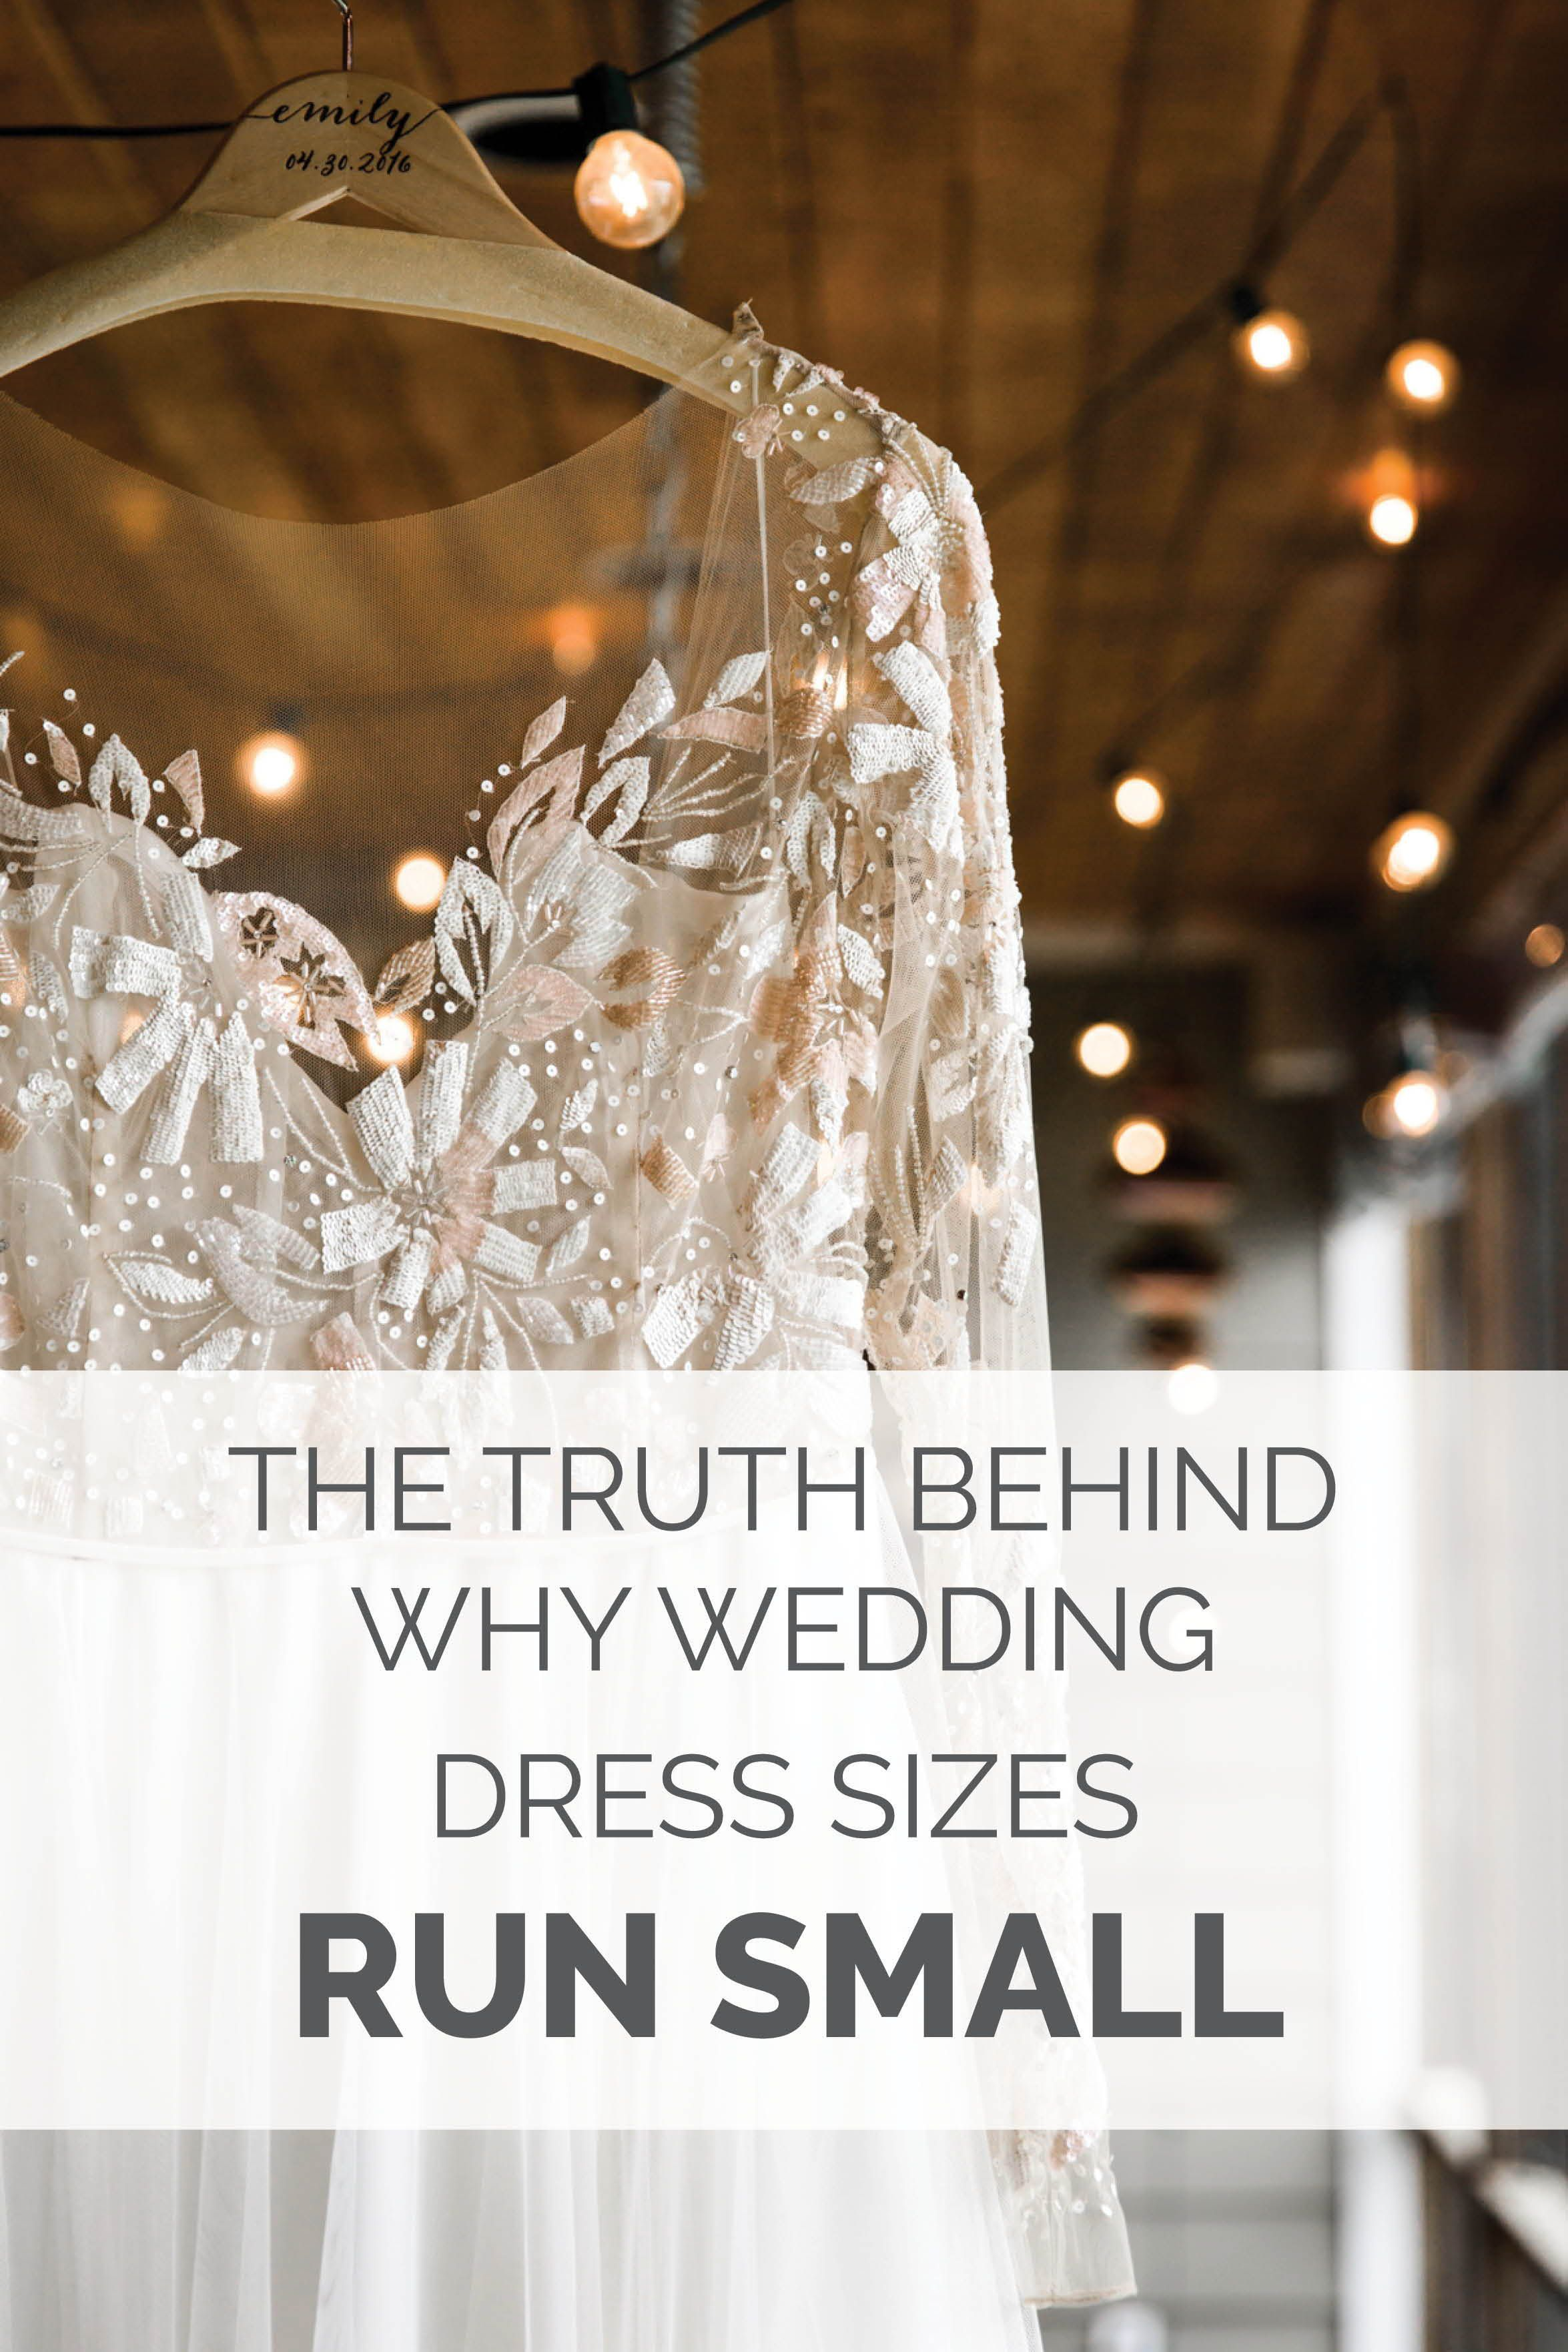 Small wedding dresses  The Truth Behind Why Wedding Dress Sizes Run Small  Wedding